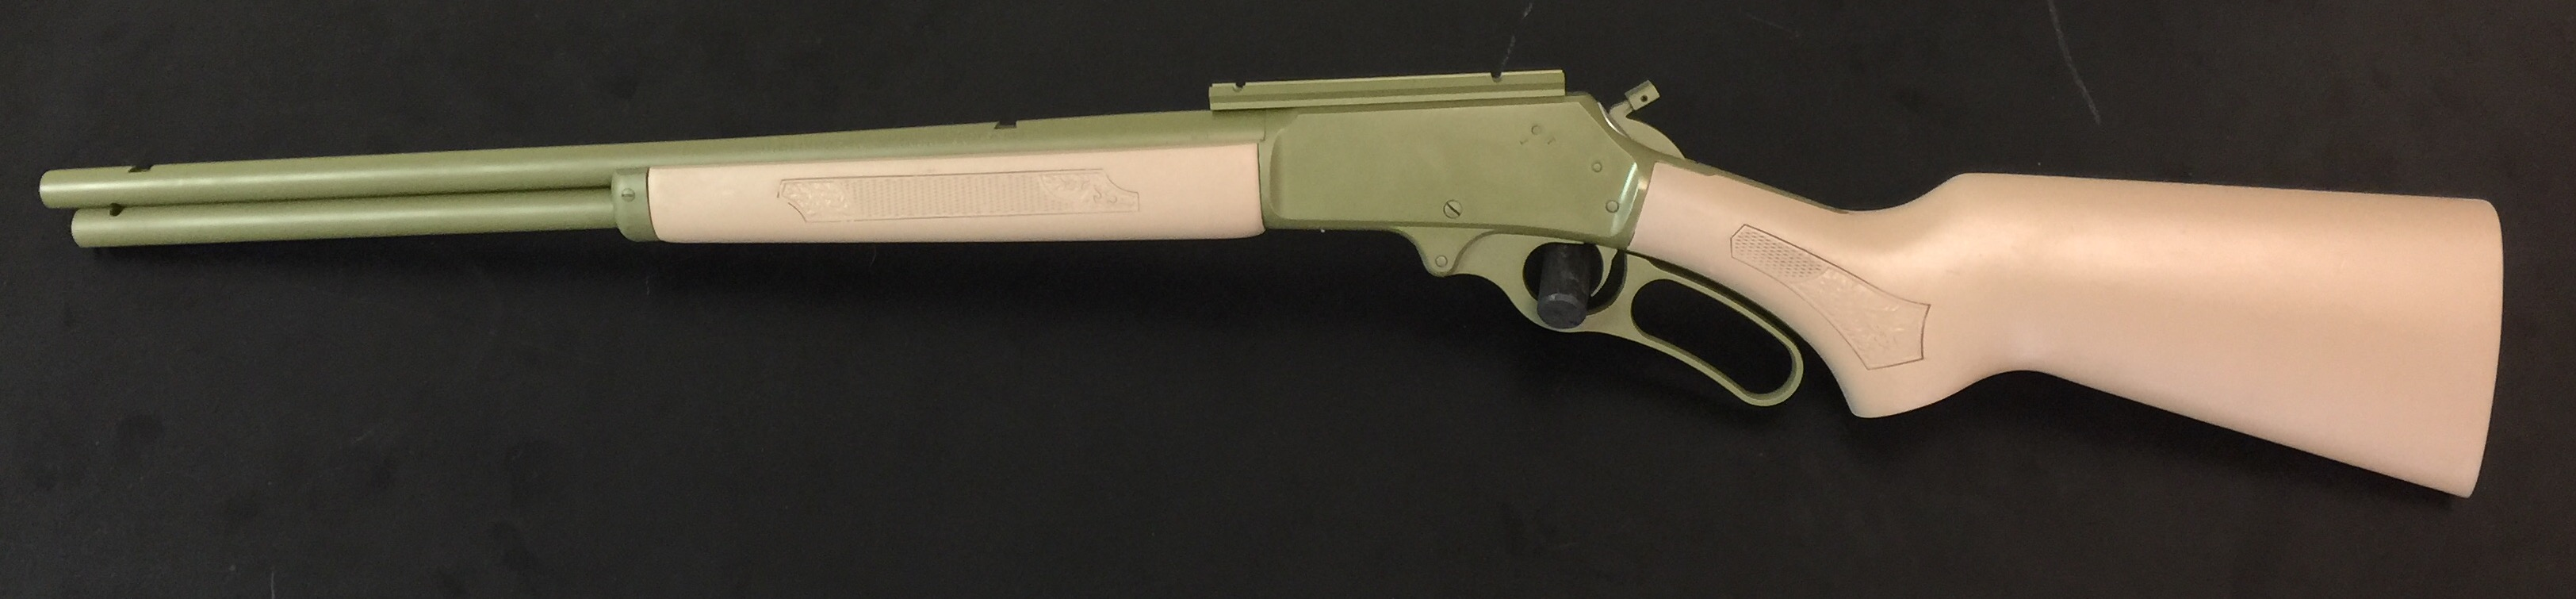 Cerakote on a wood stock in Coyote tan and bazooka green